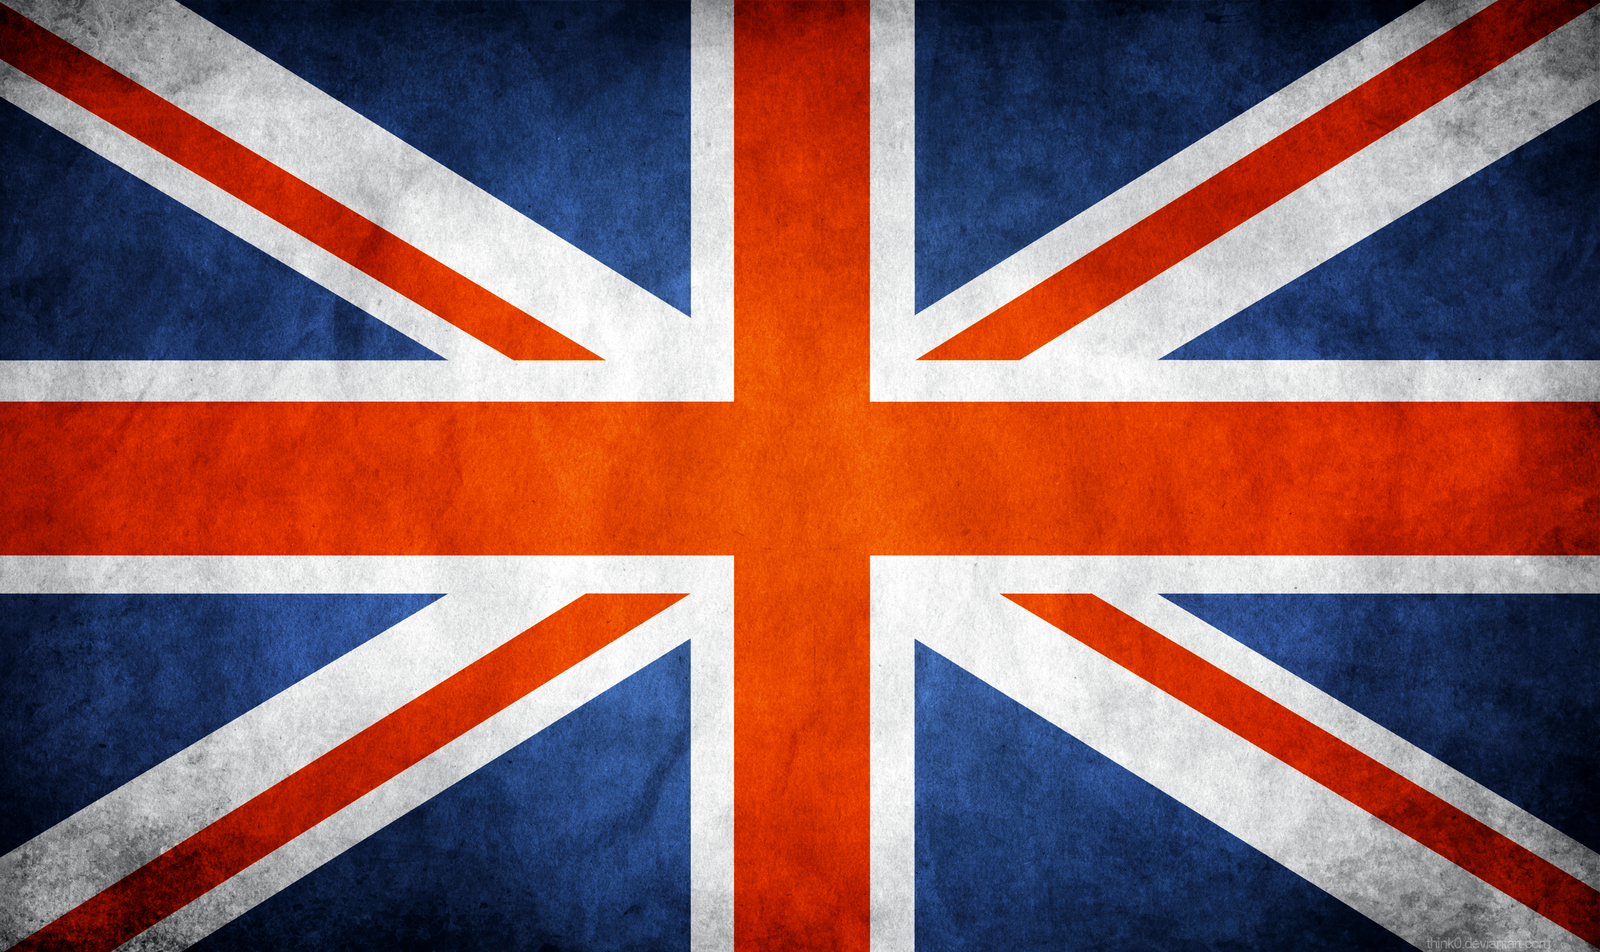 union jack britain flag wallpaper desktop download